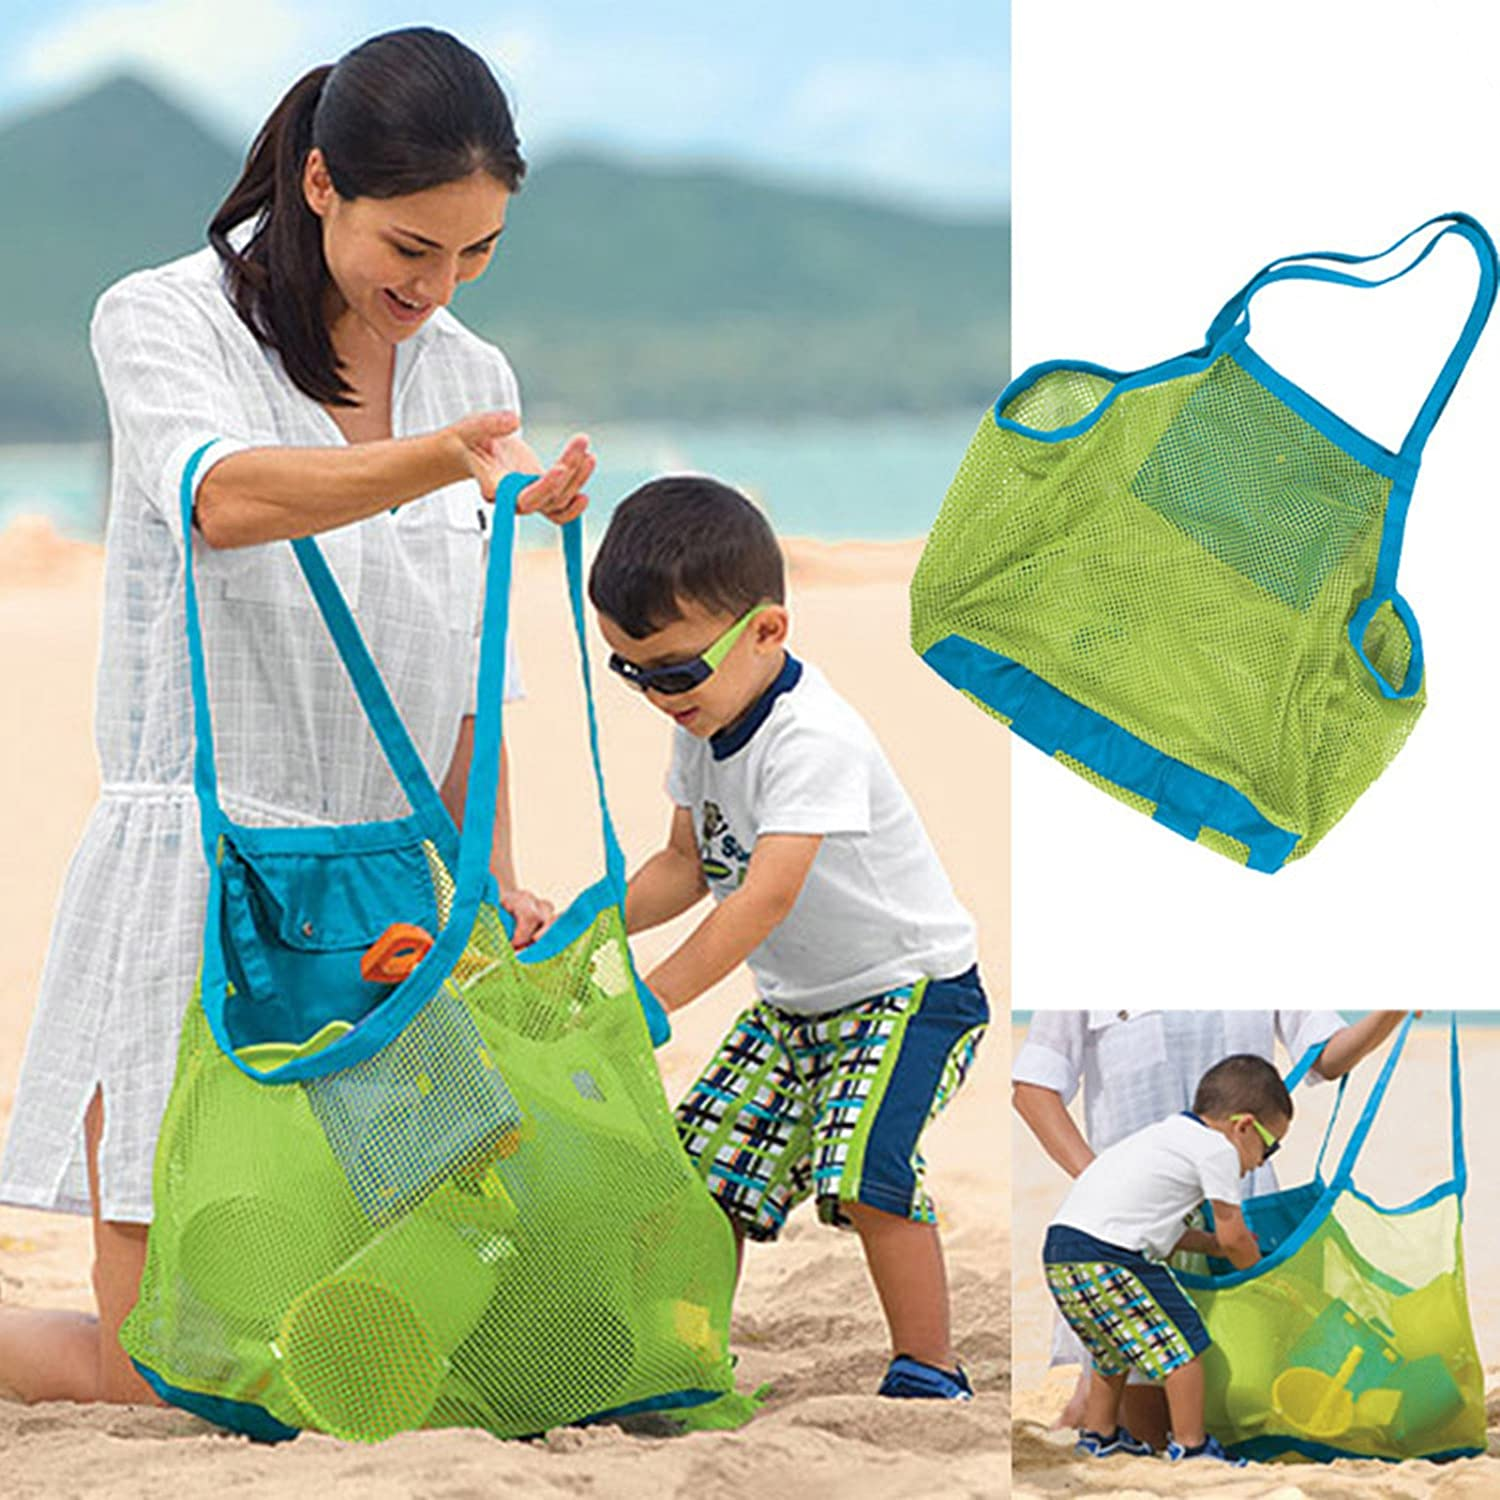 AnHua®Beach Tote Bag Sand Away Kids Toddler Toys Bags, Beach Towel, Clothes,all Mesh Swimming Clothes Beach Balls Towel (Swim, Toys, Boating. Etc.)- Xl Size- Stay Away From Sand and Water XB05